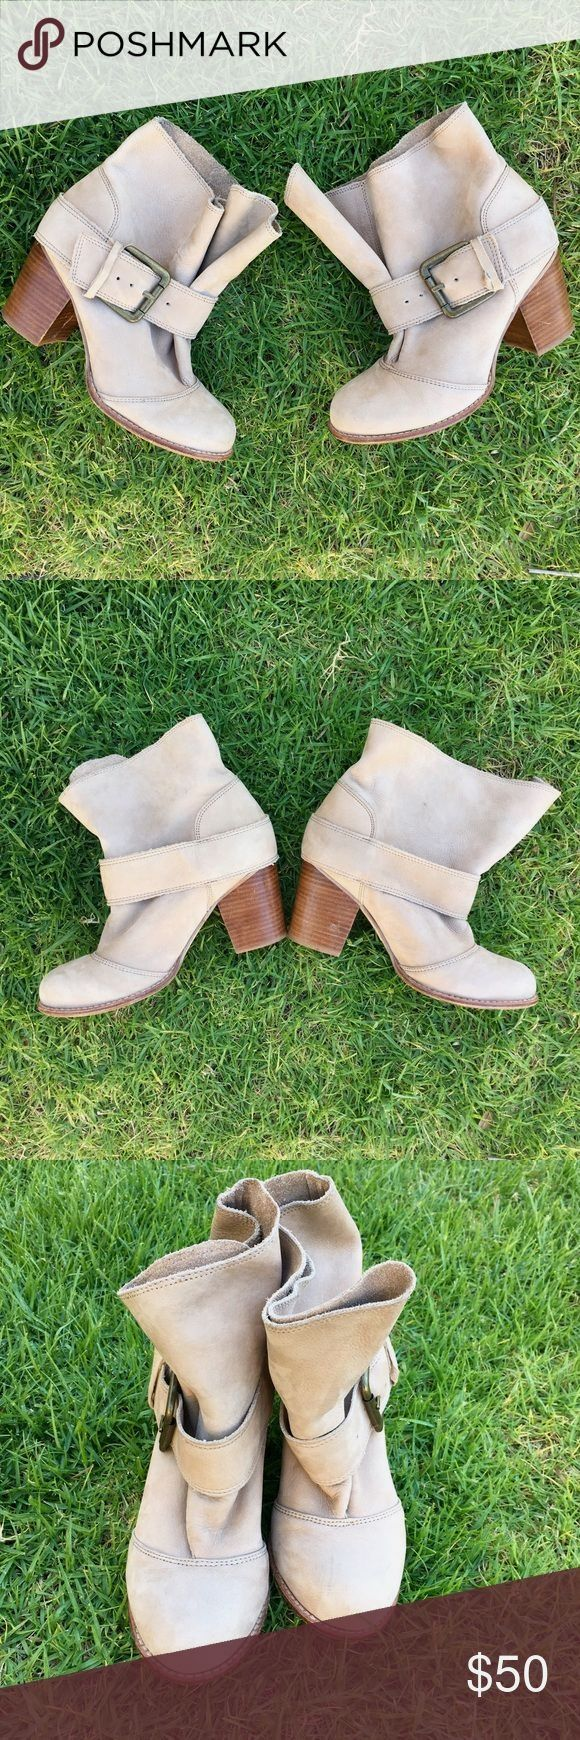 Splendid slouchy buckled booties Splendid buckled booties. In good condition. Straps that hold buckle down has split as you can see in pics but still does it job and holds the strap down. This bootie is meant to be slouchy. Heel is 3 inches high. Size 7. Questions? Offers? Splendid Shoes Ankle Boots & Booties